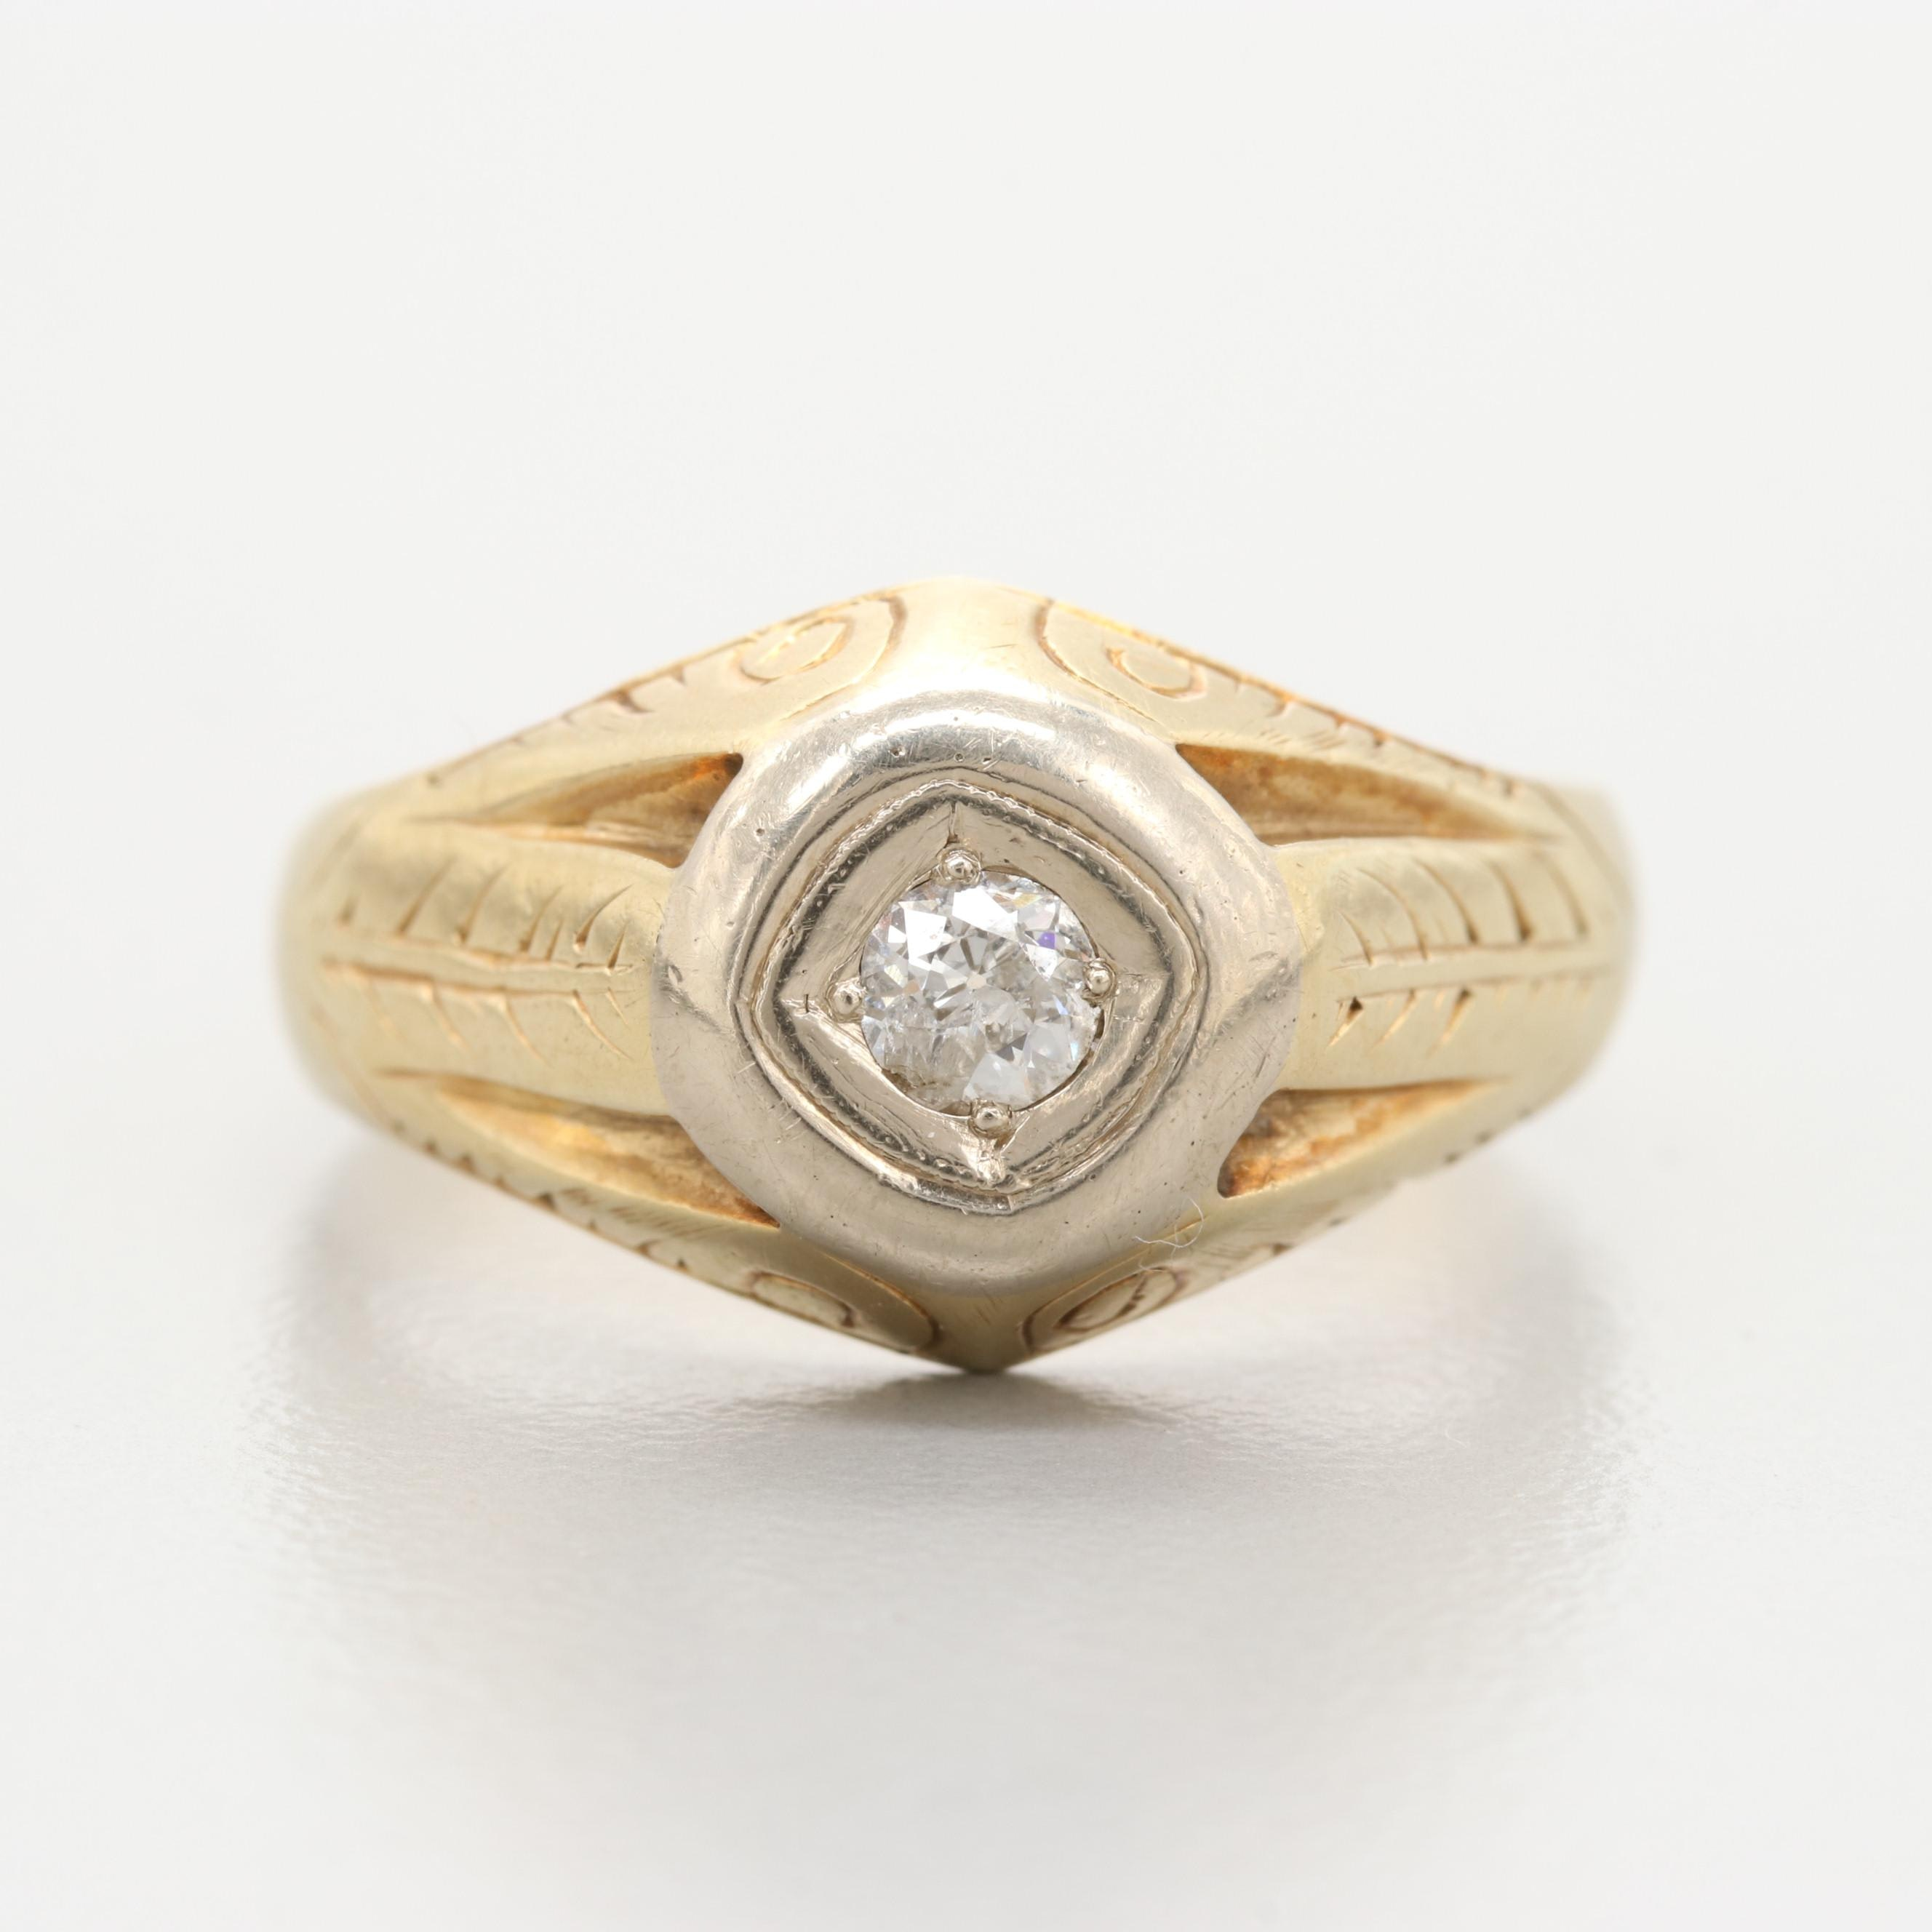 Circa 1921 14K Yellow Gold Diamond Ring